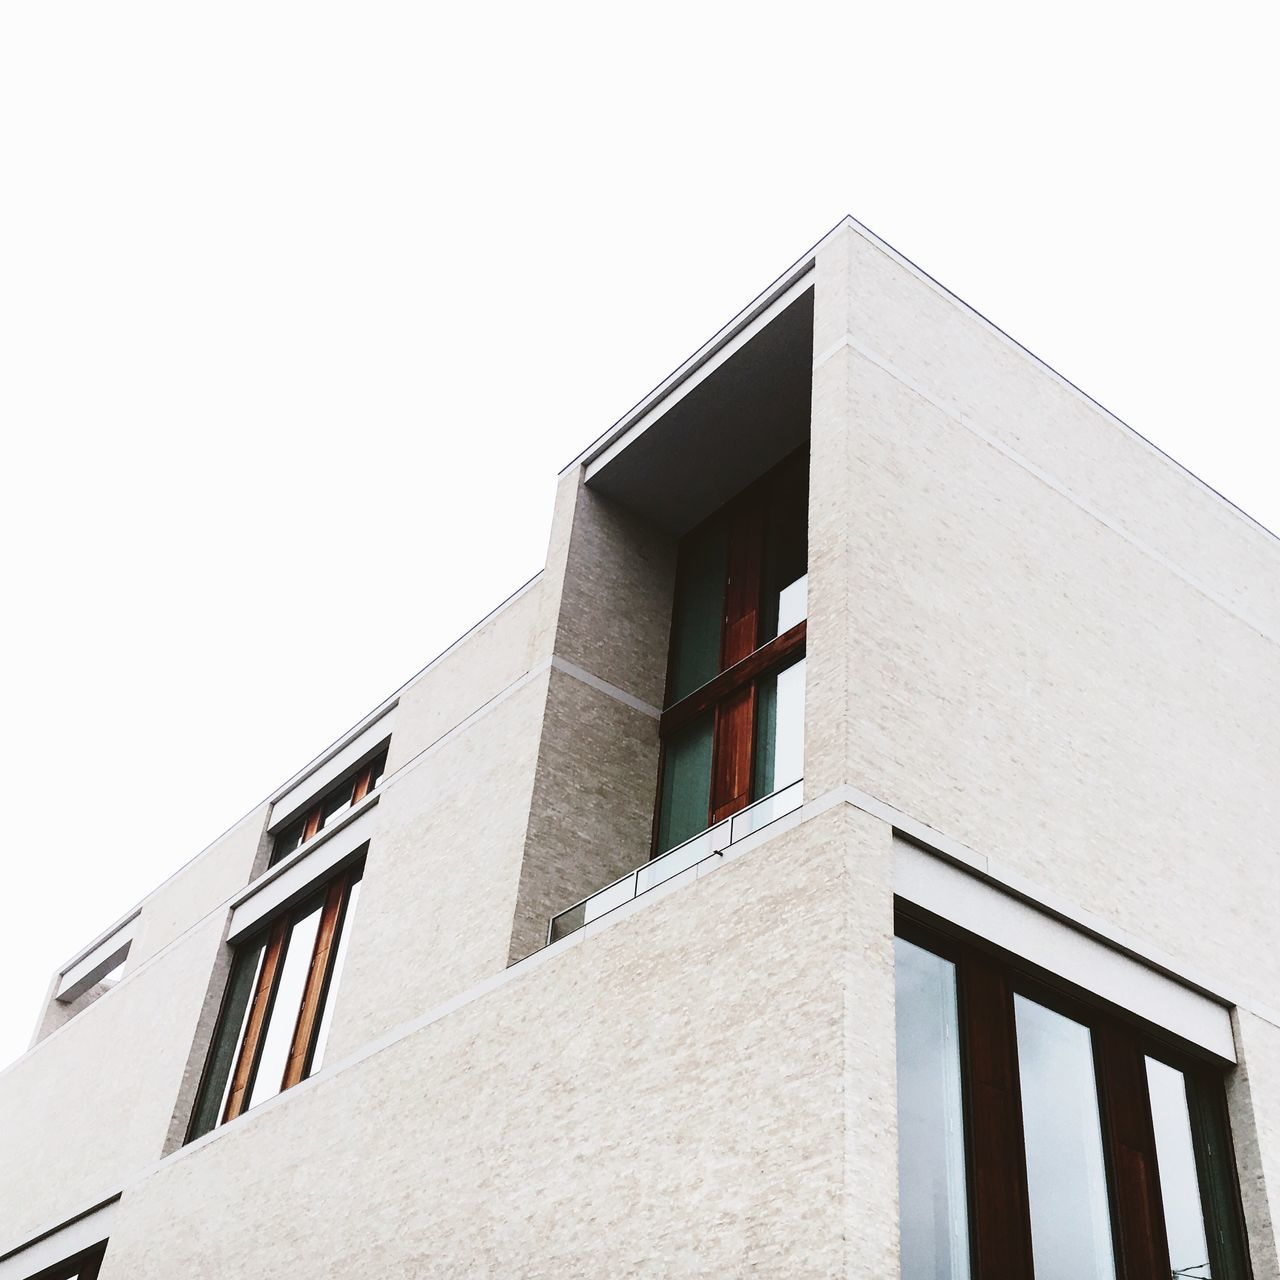 Architecture Berlin City Modern Modern Architecture Urban Geometry White Building Building Exterior Built Structure Luxury Home White White Color White Sky Wooden Window Pane